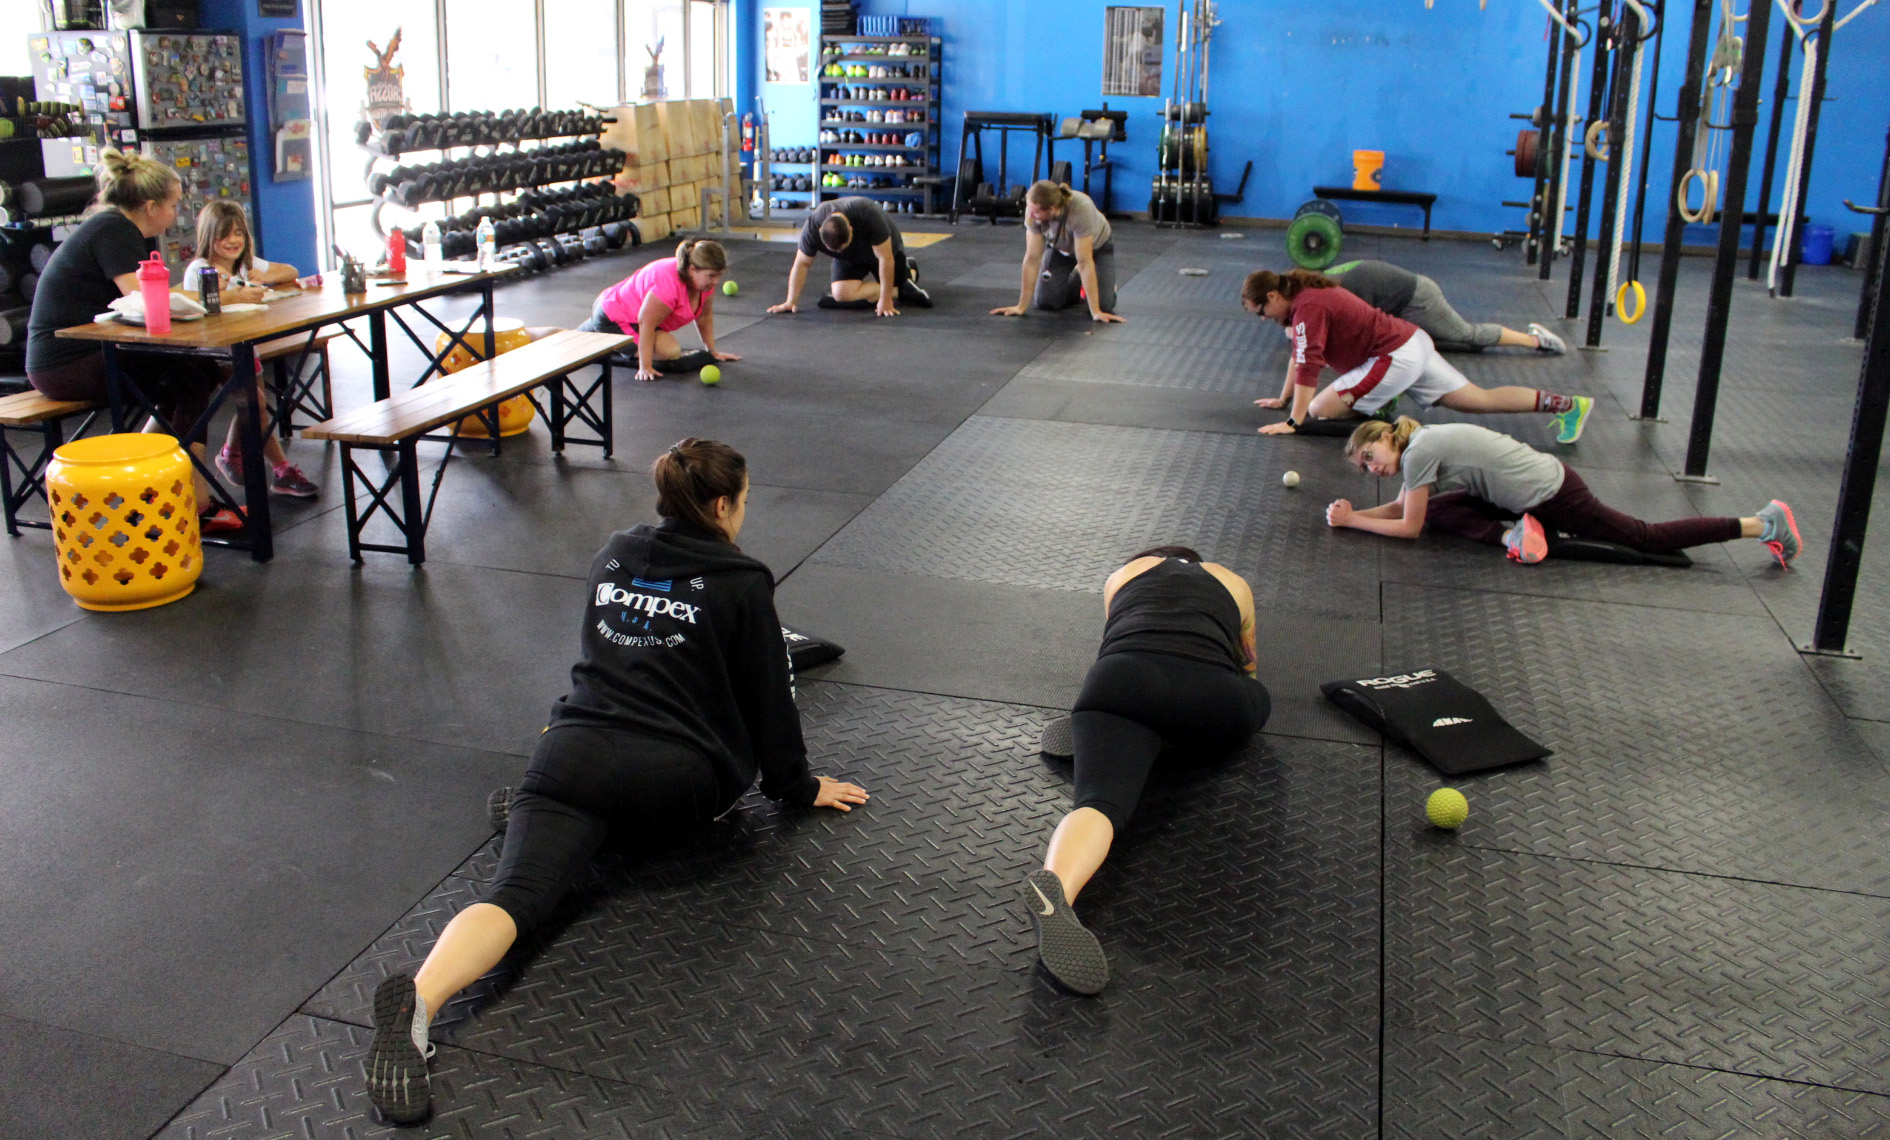 Working on hip mobility